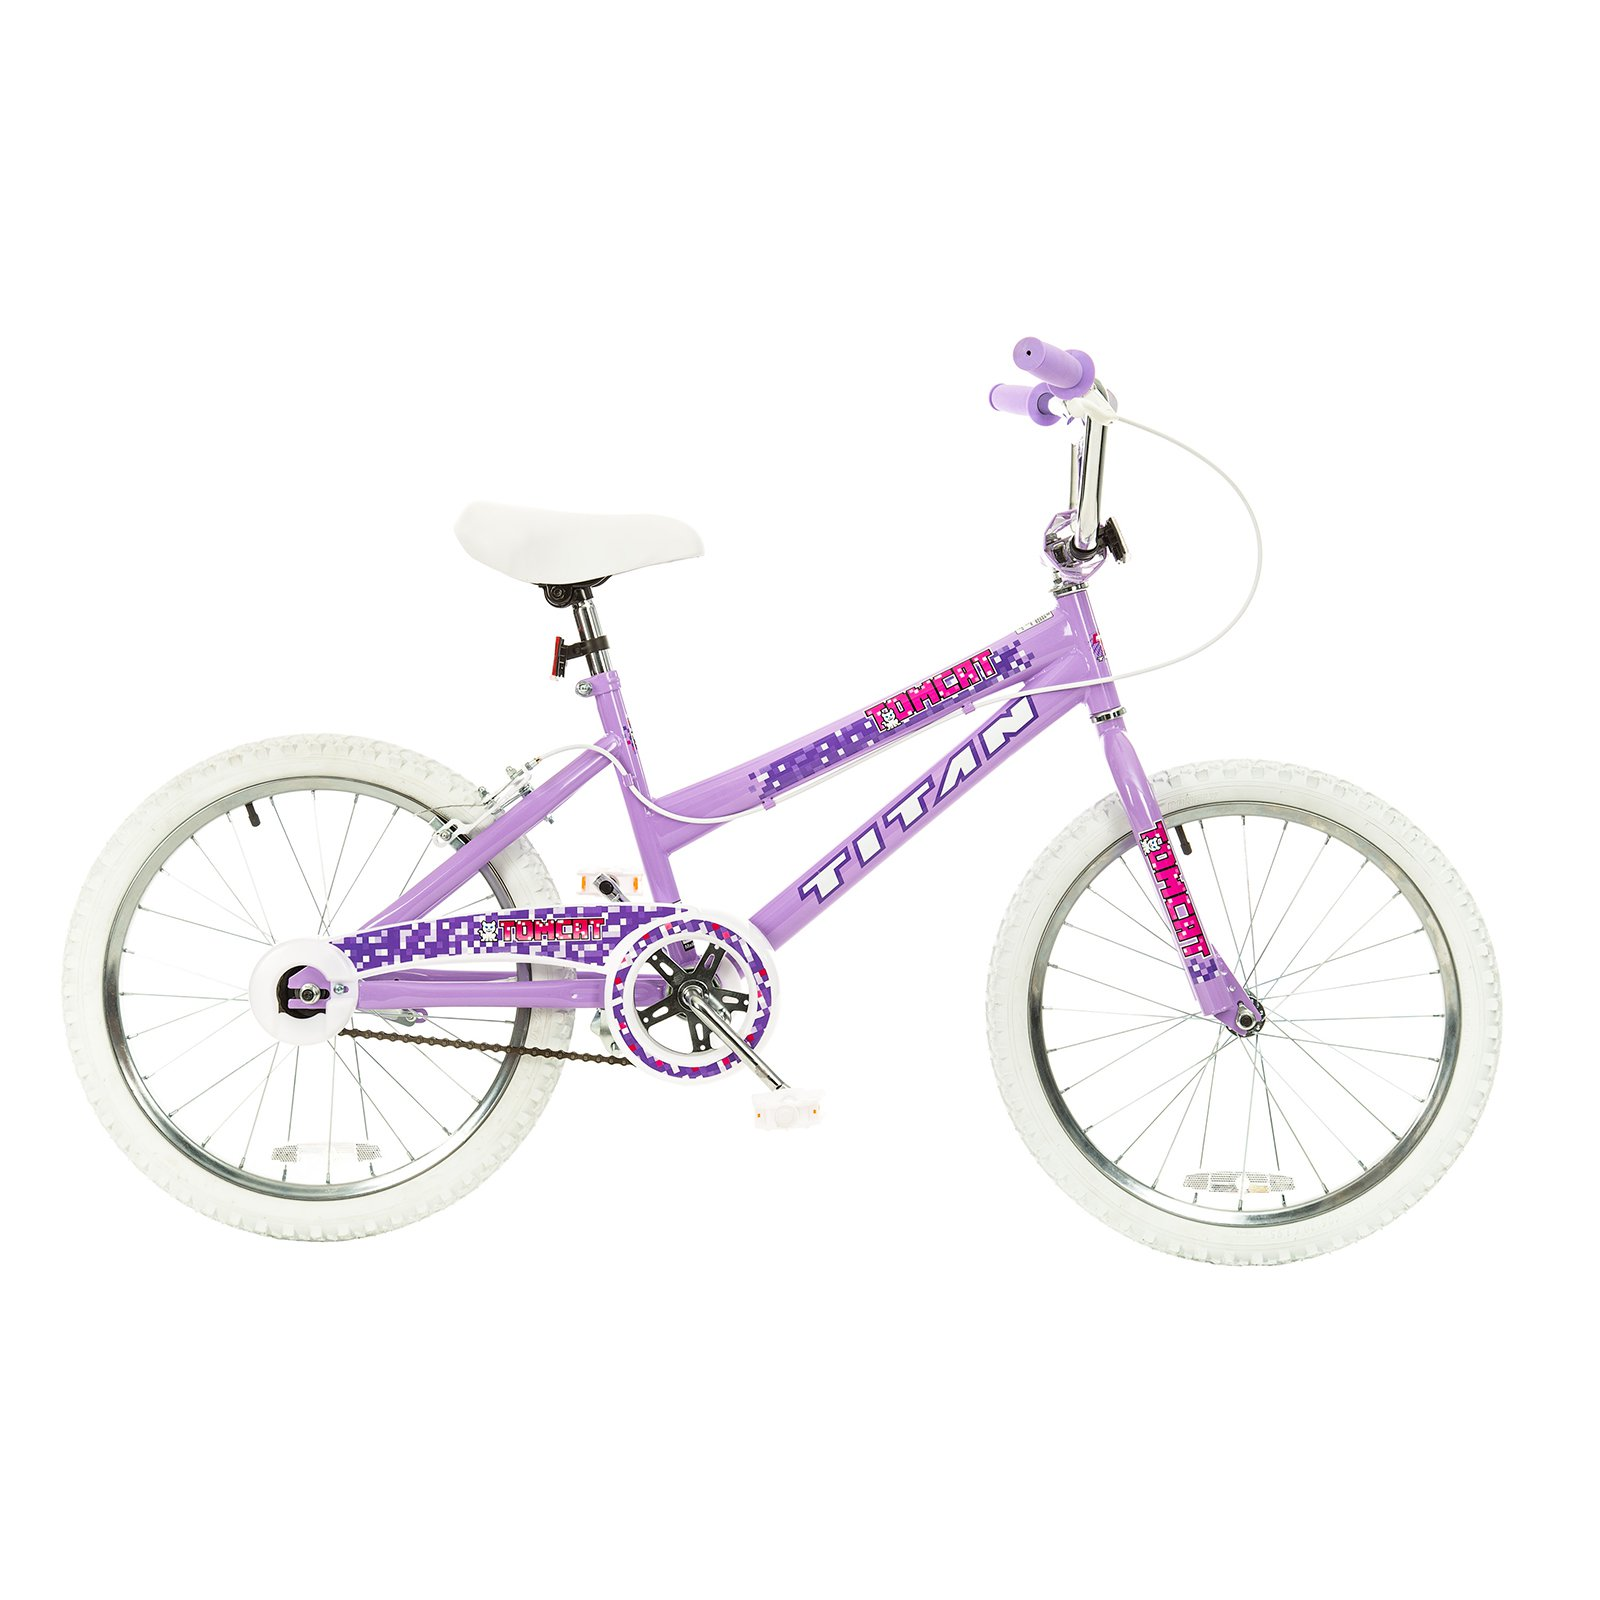 "TITAN Tomcat Girls BMX Bike with 20"" Wheels, Lavender"